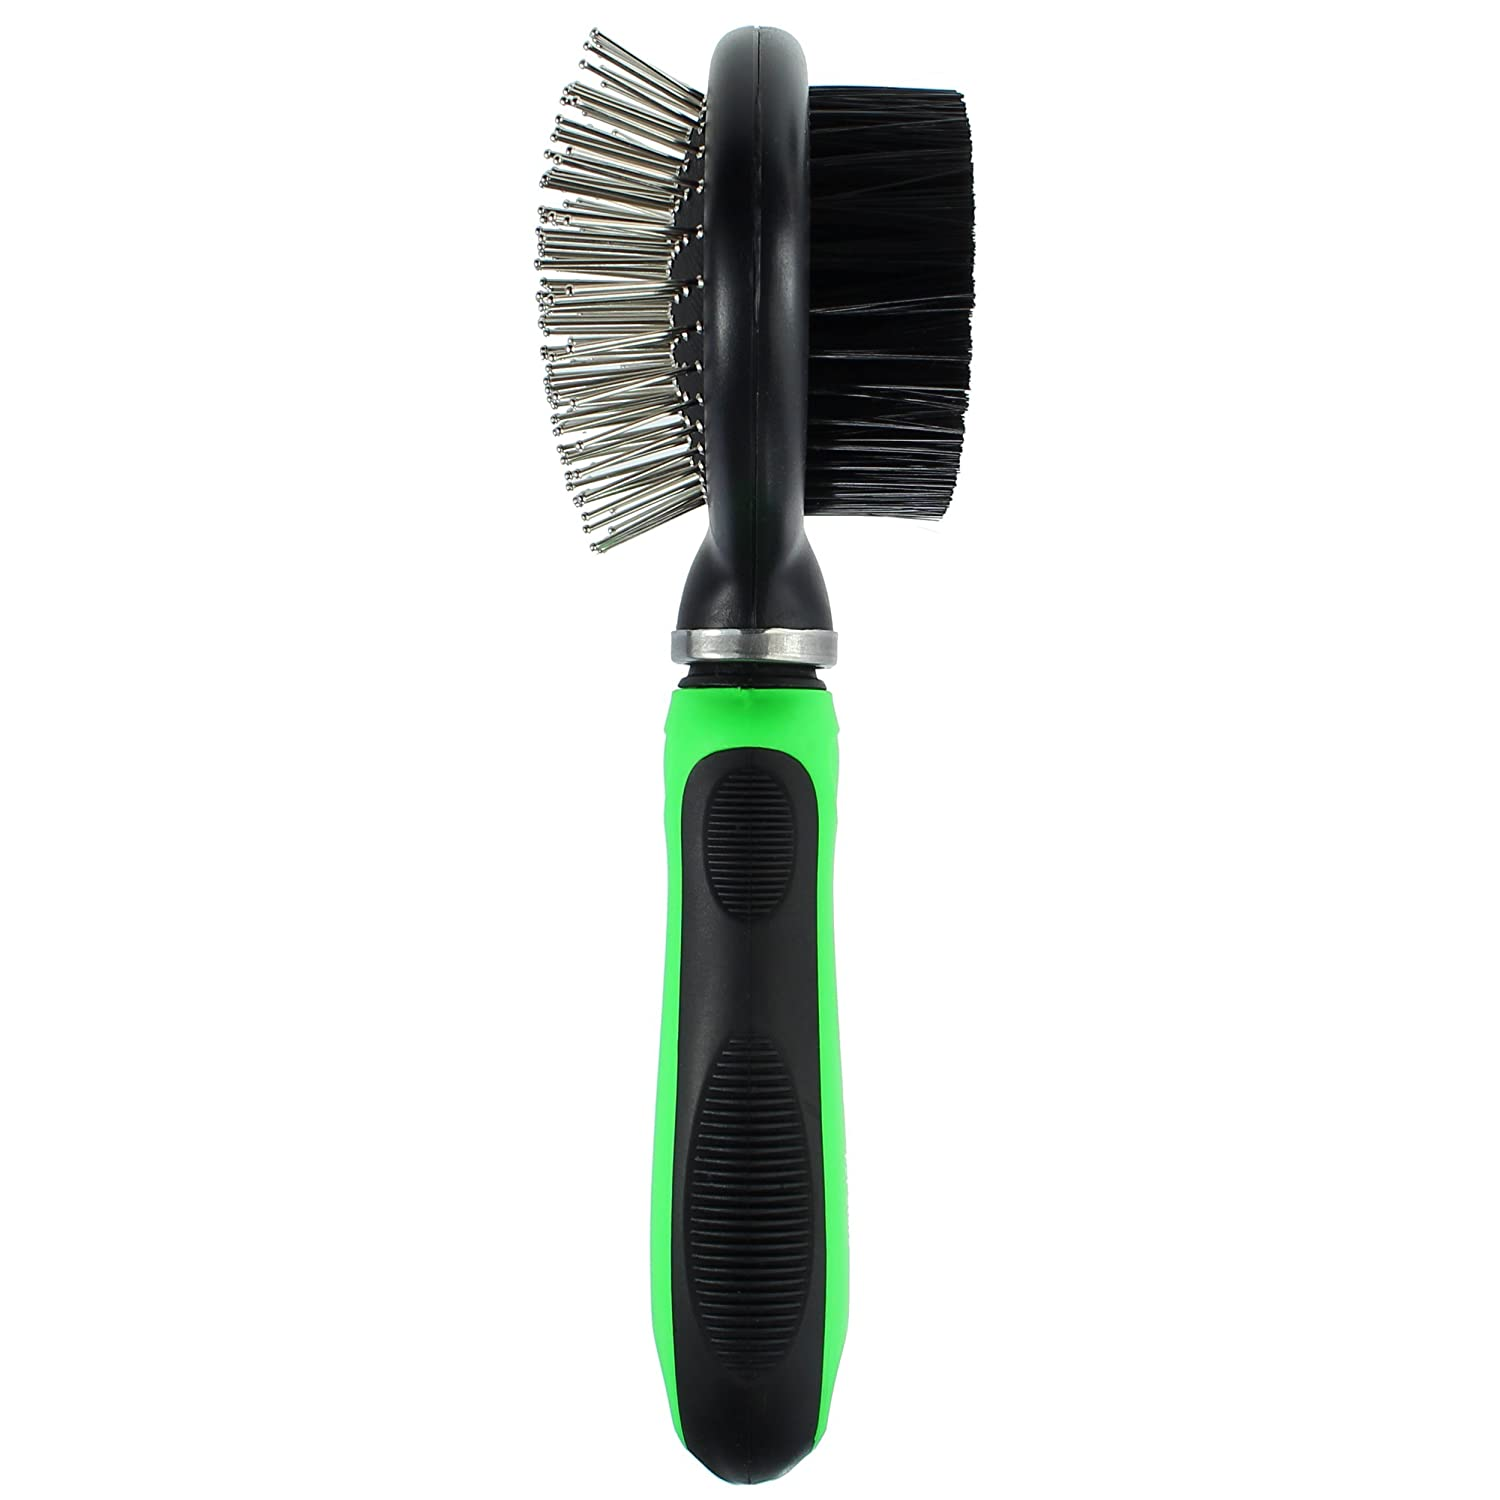 (Green) Pet Grooming Brush for Dogs and Cats With Long or Short Hair Dual 2 in 1 Pin and Bristle Quick and Easy to Use With Swivel Head for Extra Comfort by Fuzzy Family